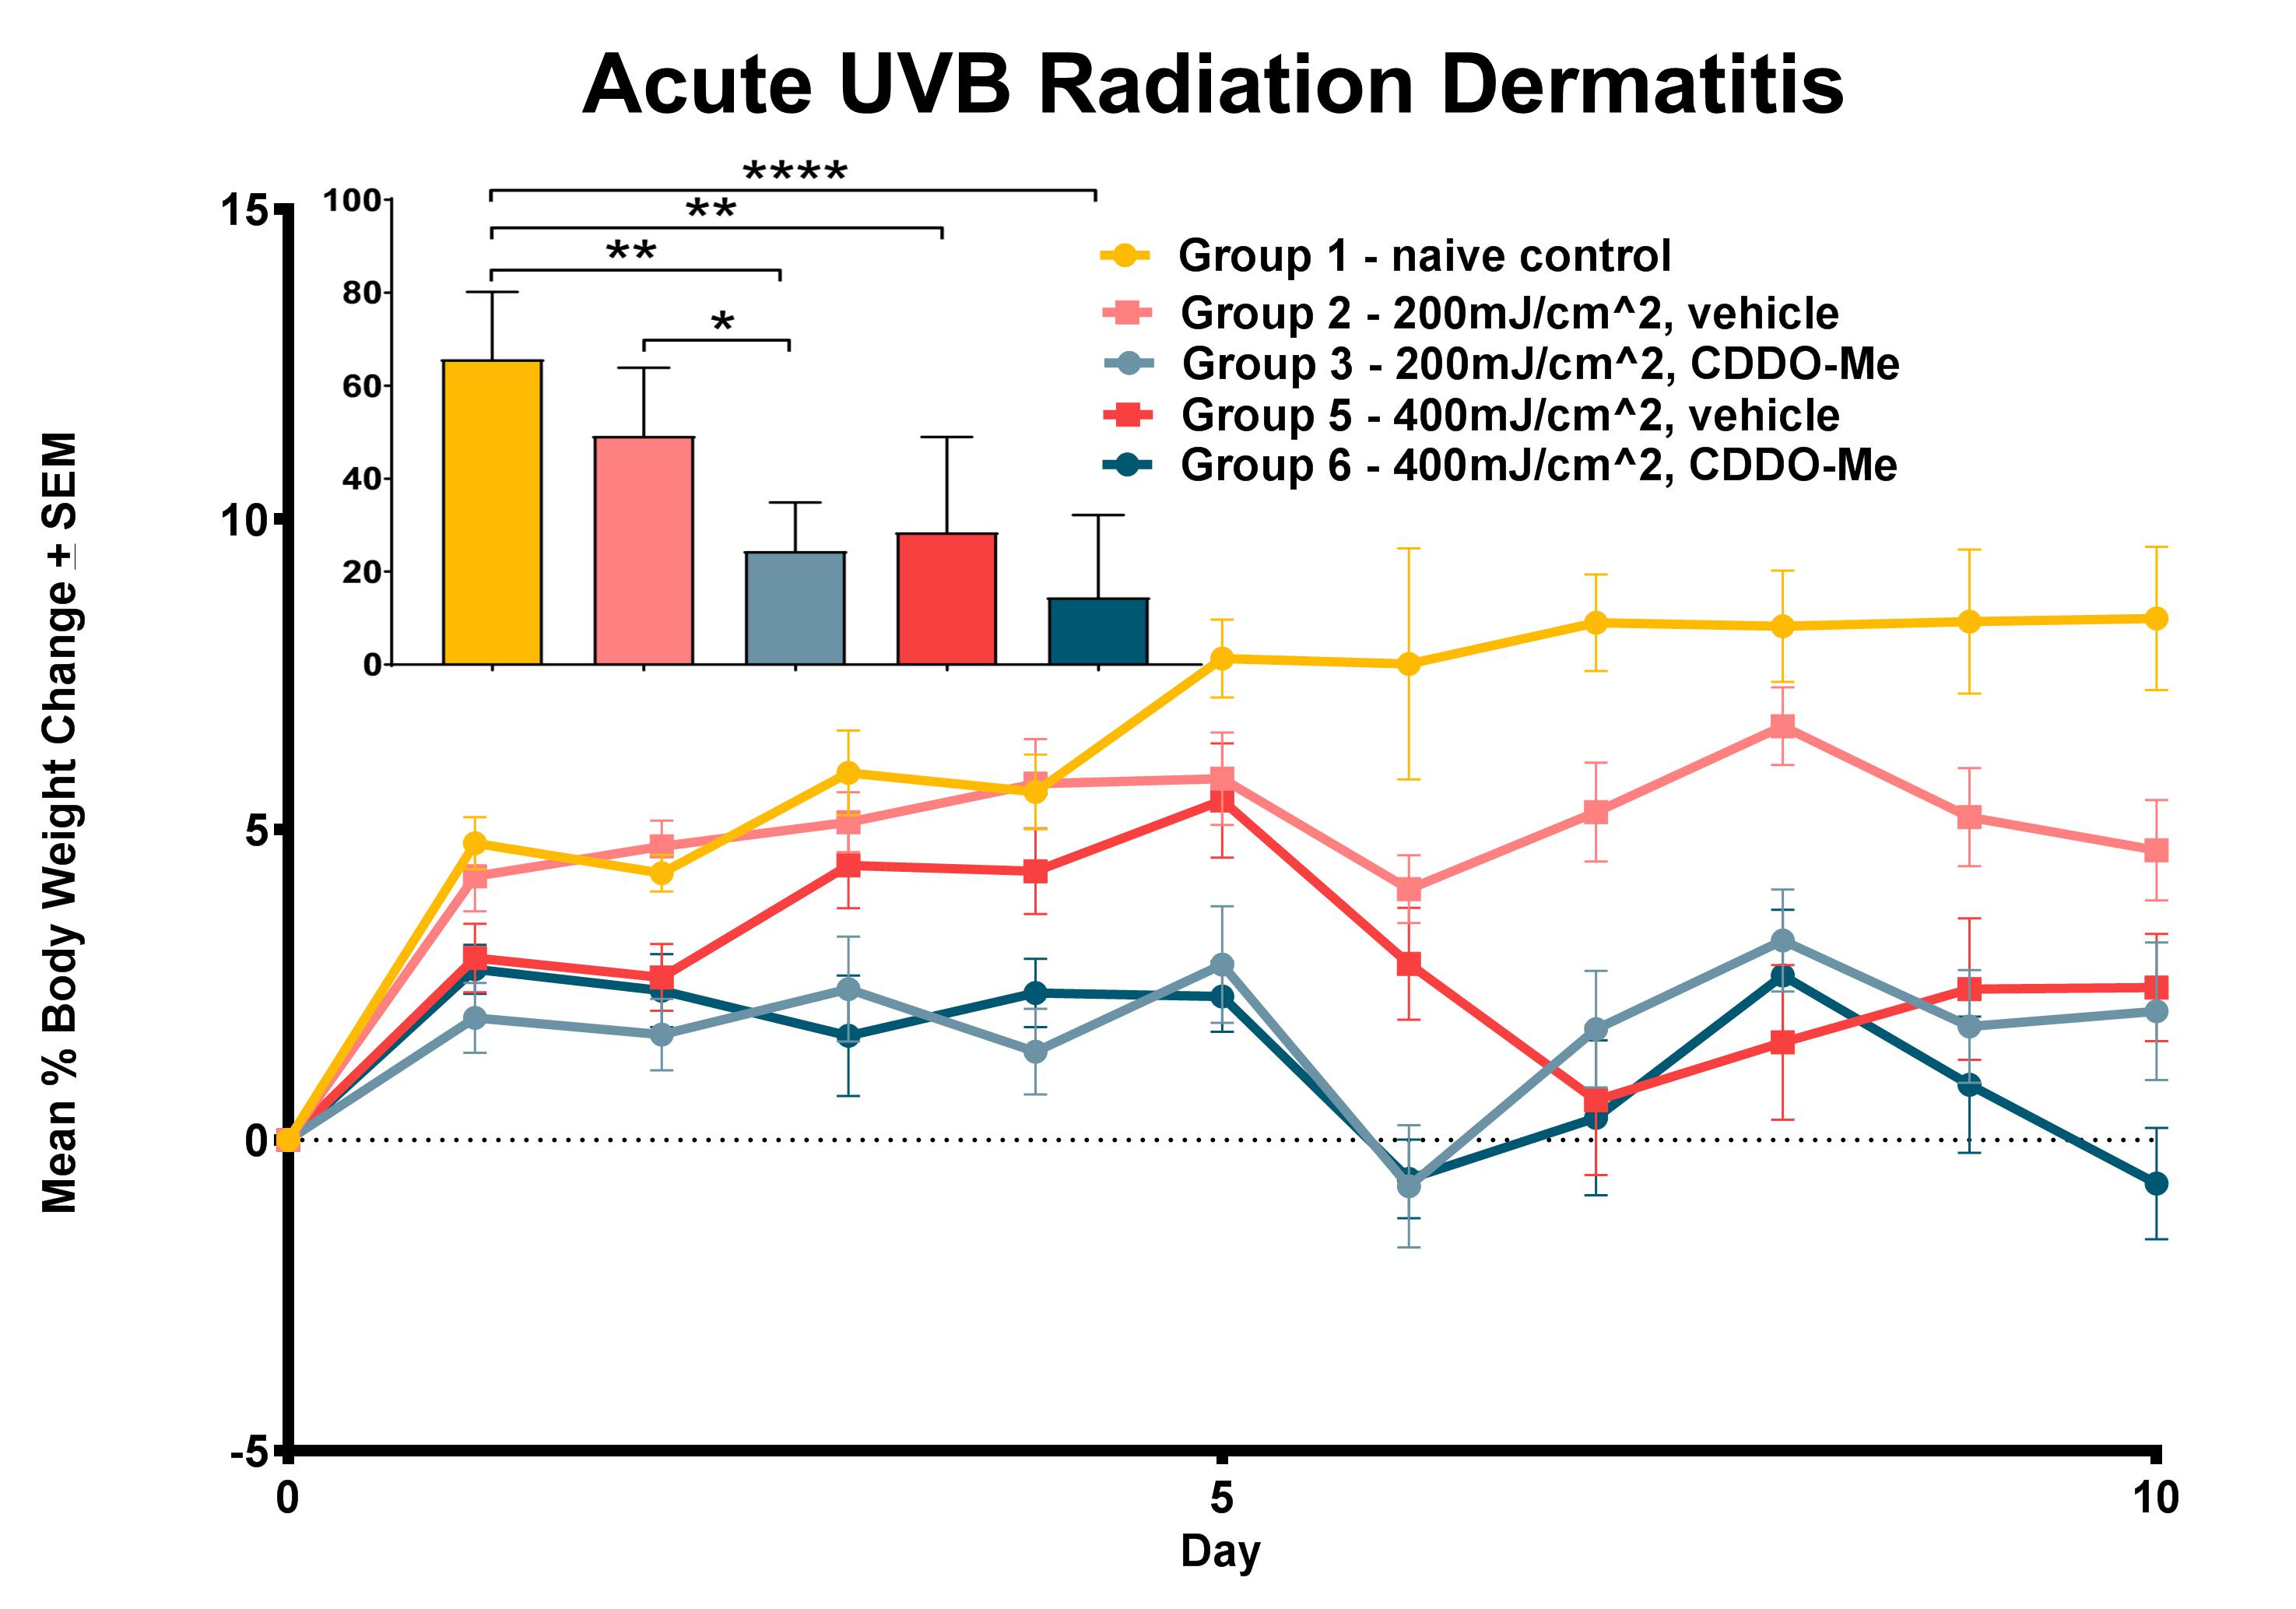 Acute UVB Radiation Dermatitis